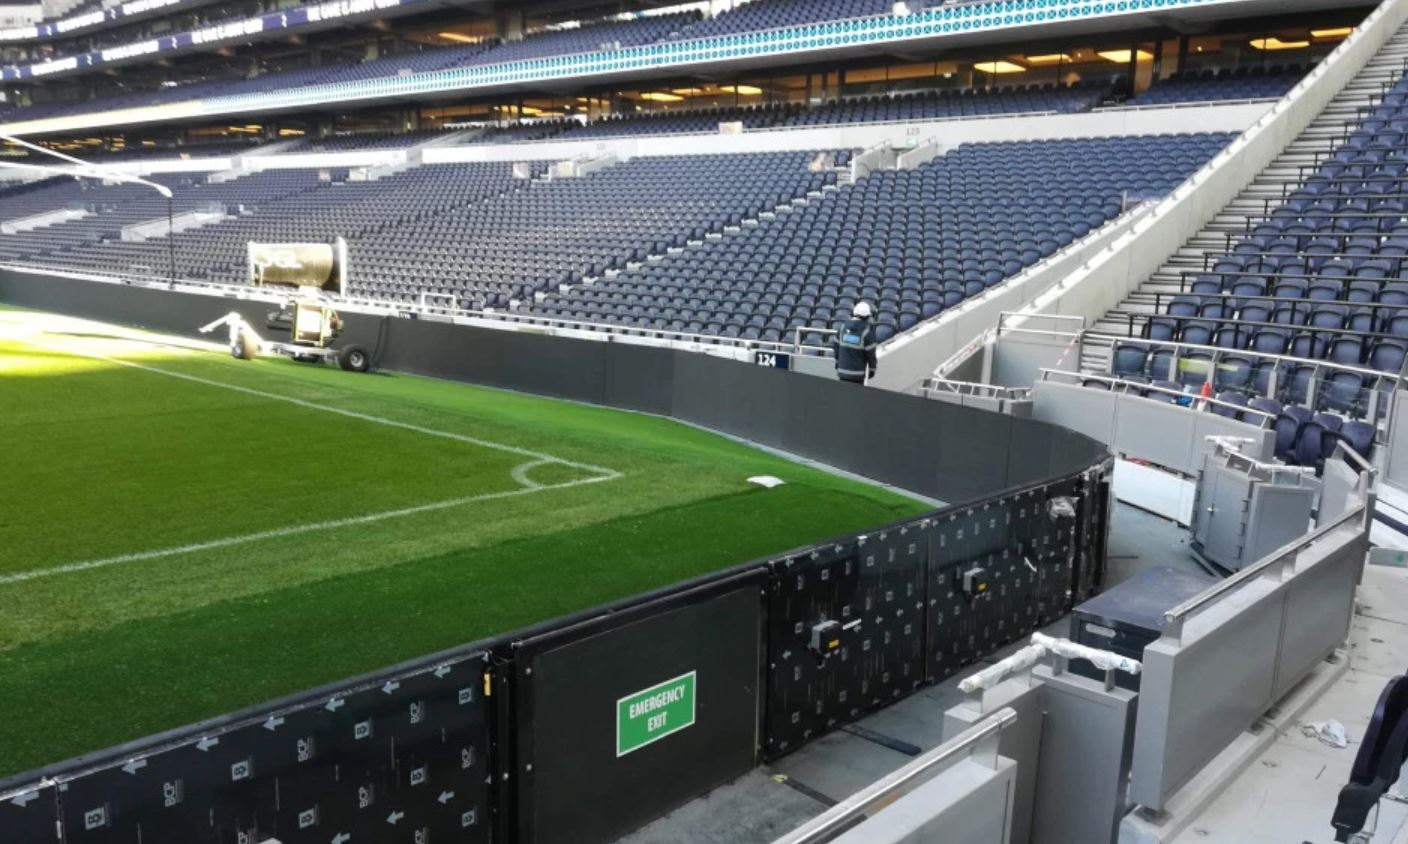 Tottenham Hotspur were earmarked to get artificial turf this season to host NFL games.